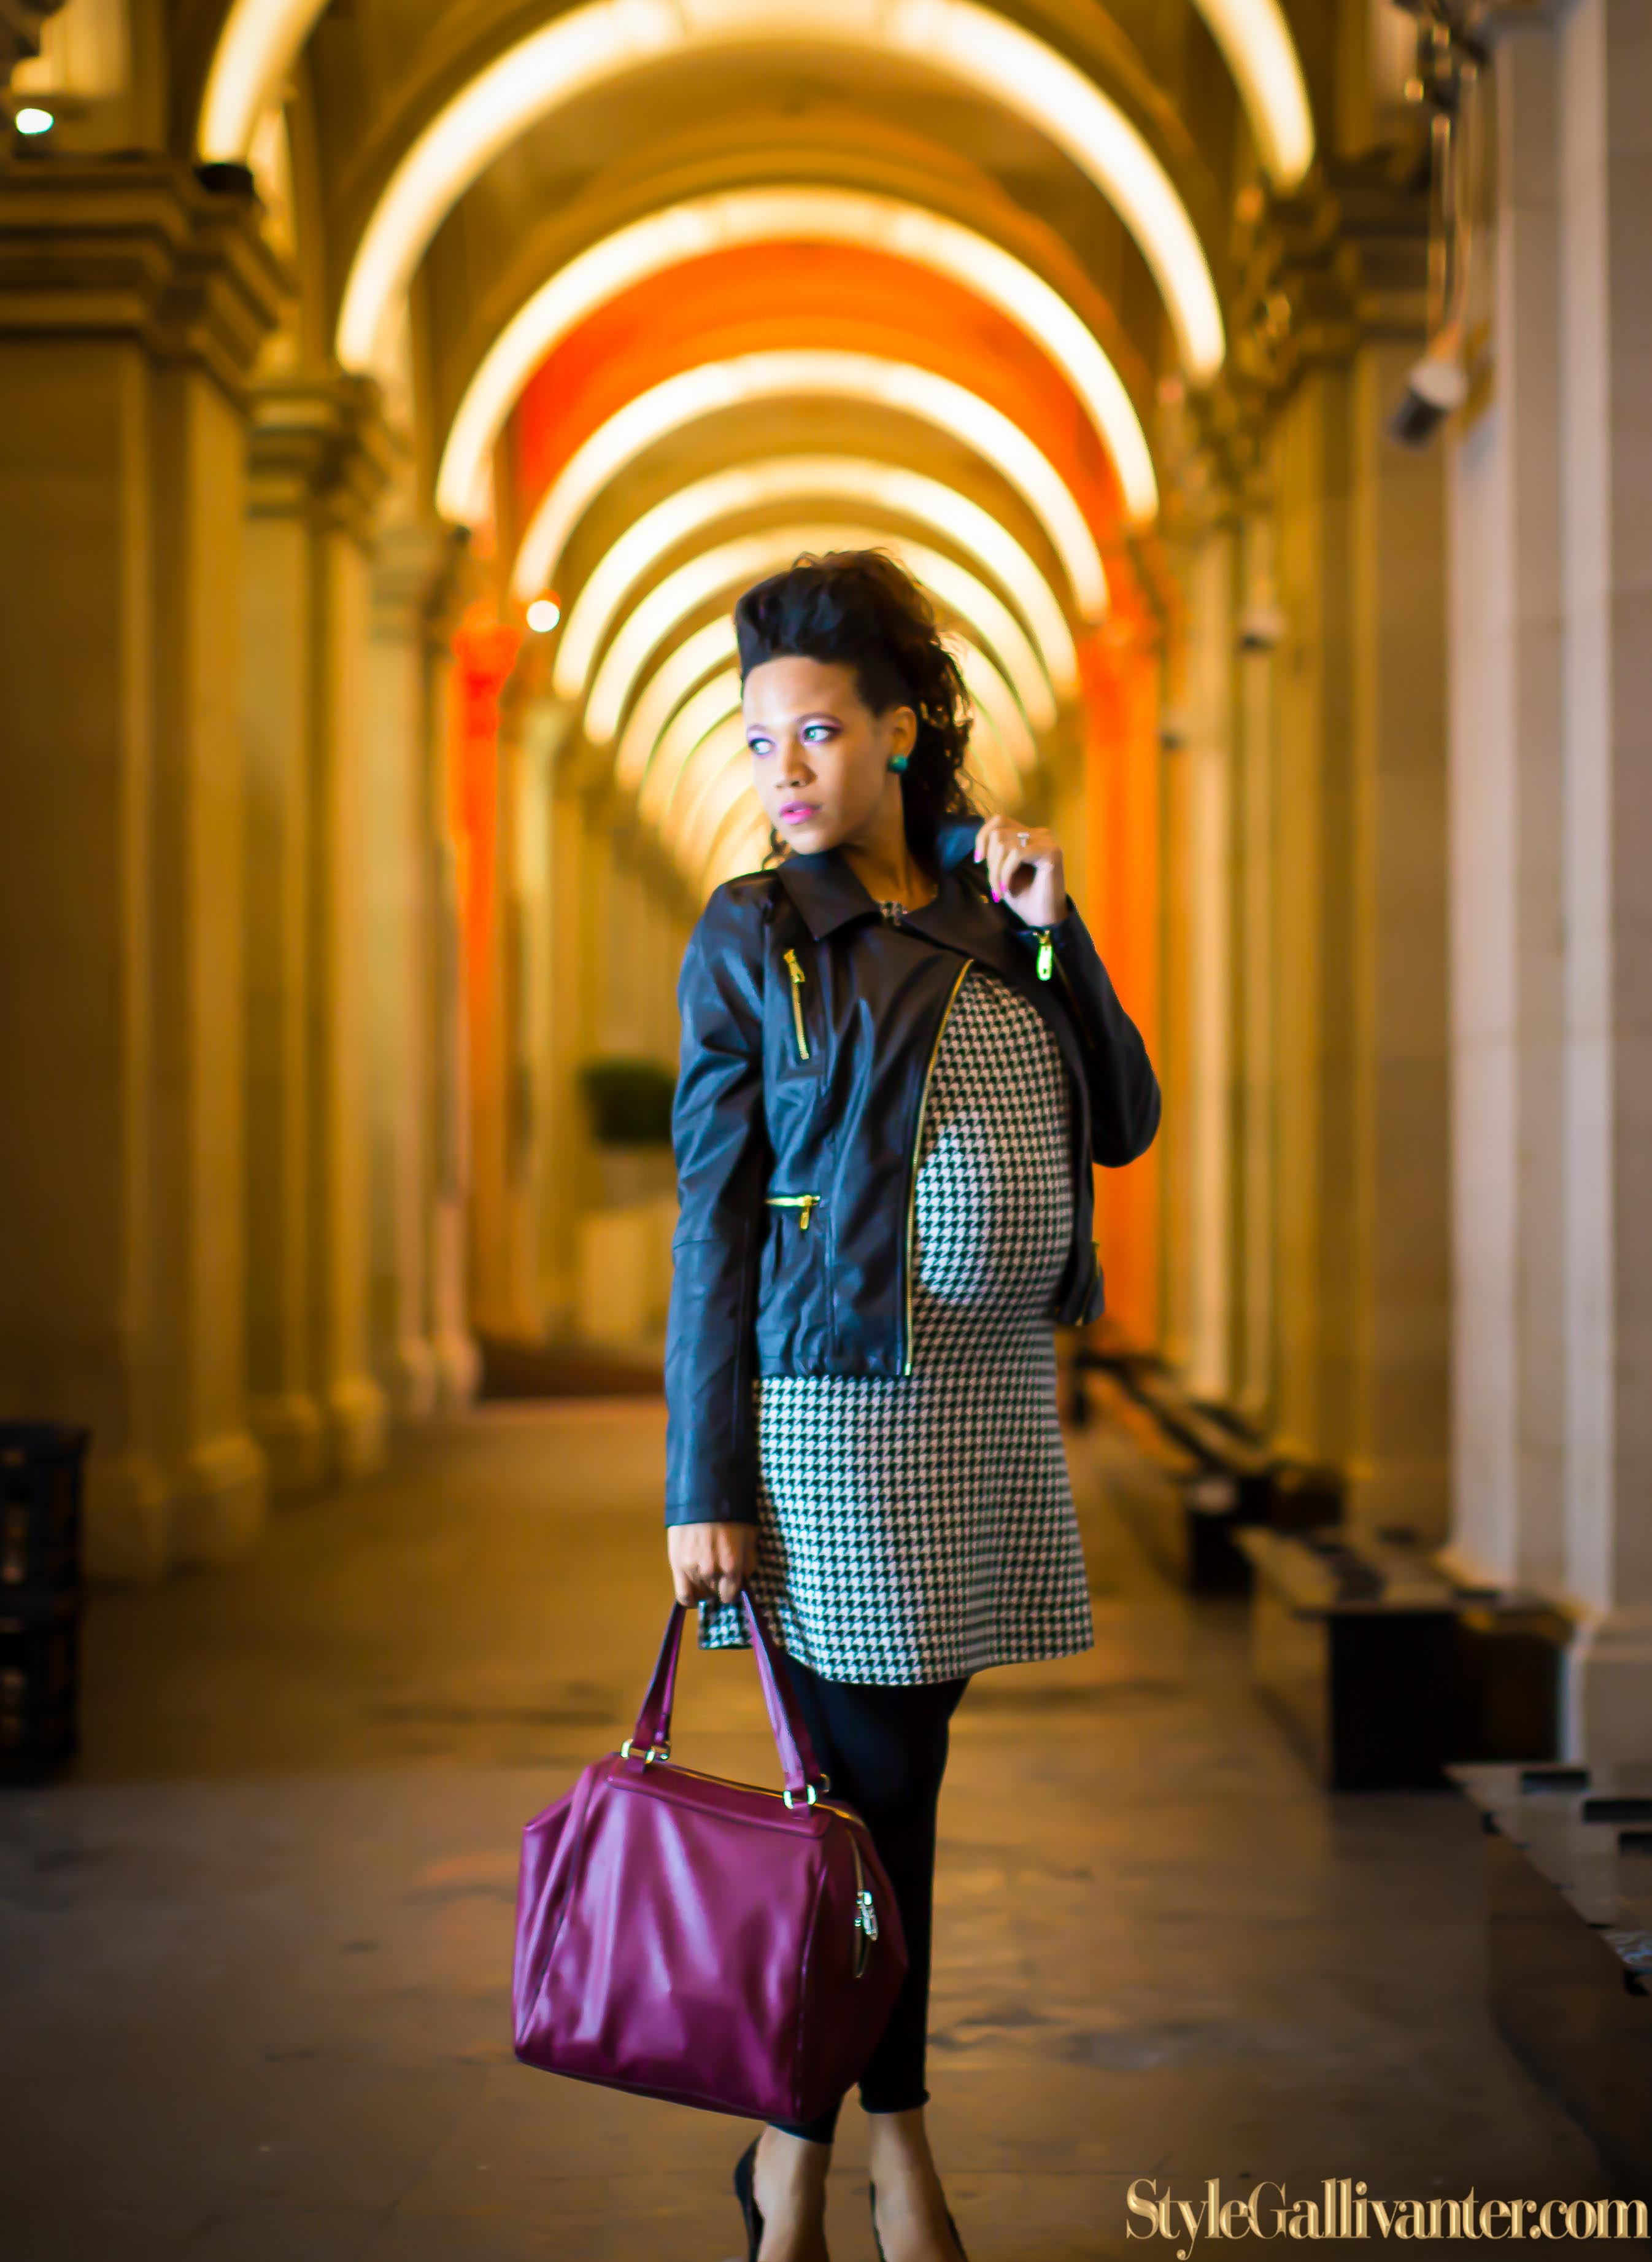 top-melbourne-fashion-blogs_pink-lipstick_model-who-blog, houndstooth-dress_what-is-houndstooth_stylish-pregnant-women-15